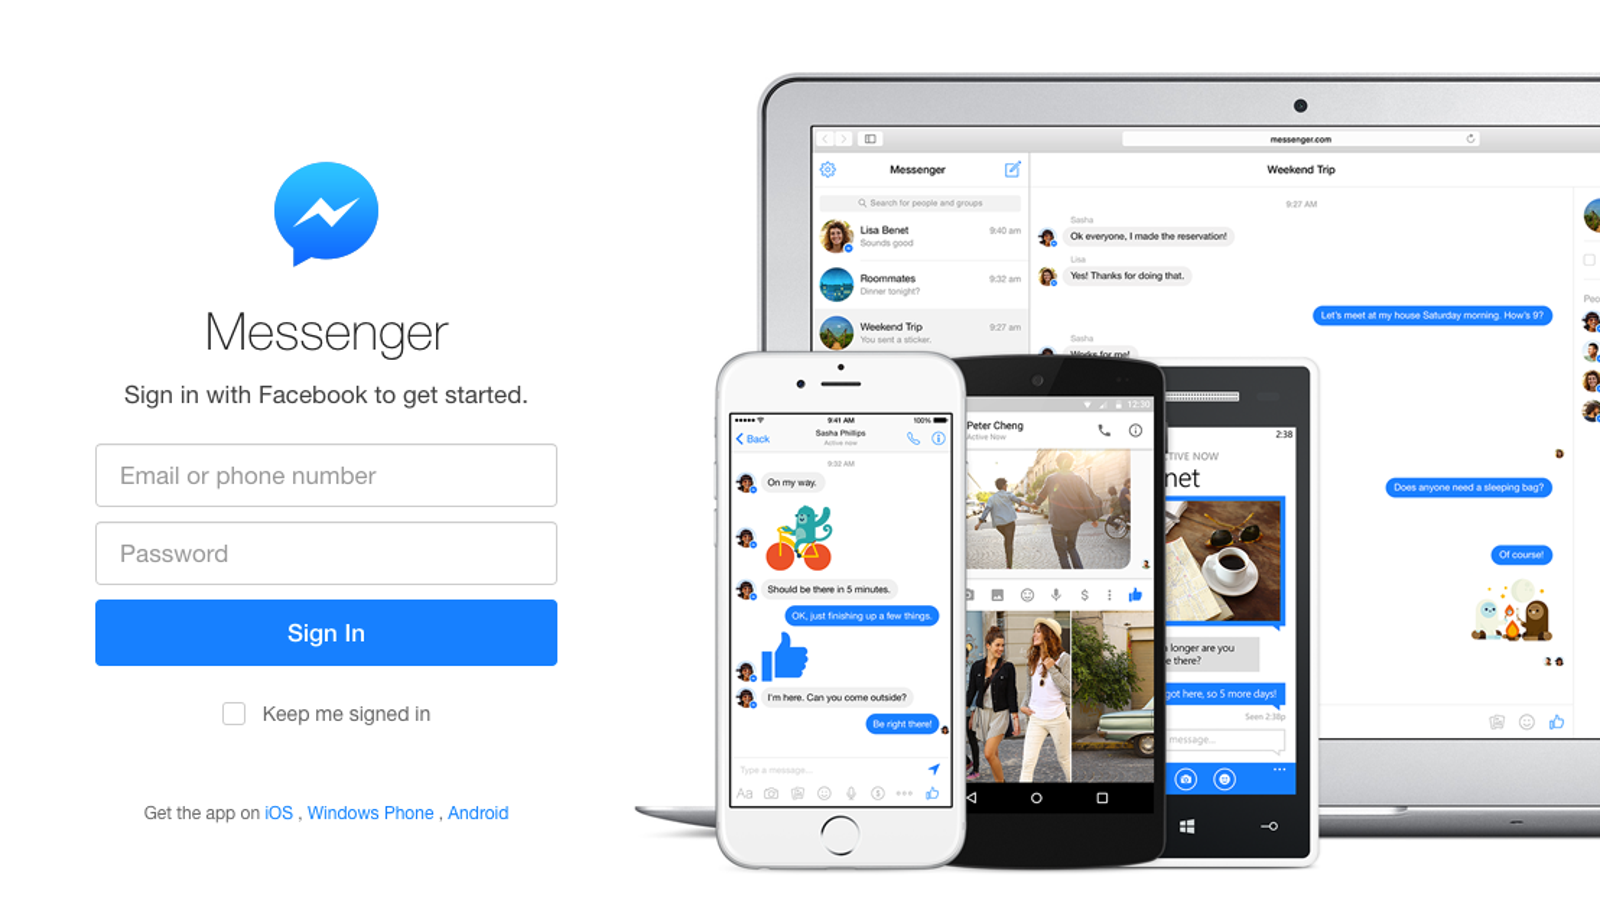 Why You Should Use Facebook Messenger Instead of SMS